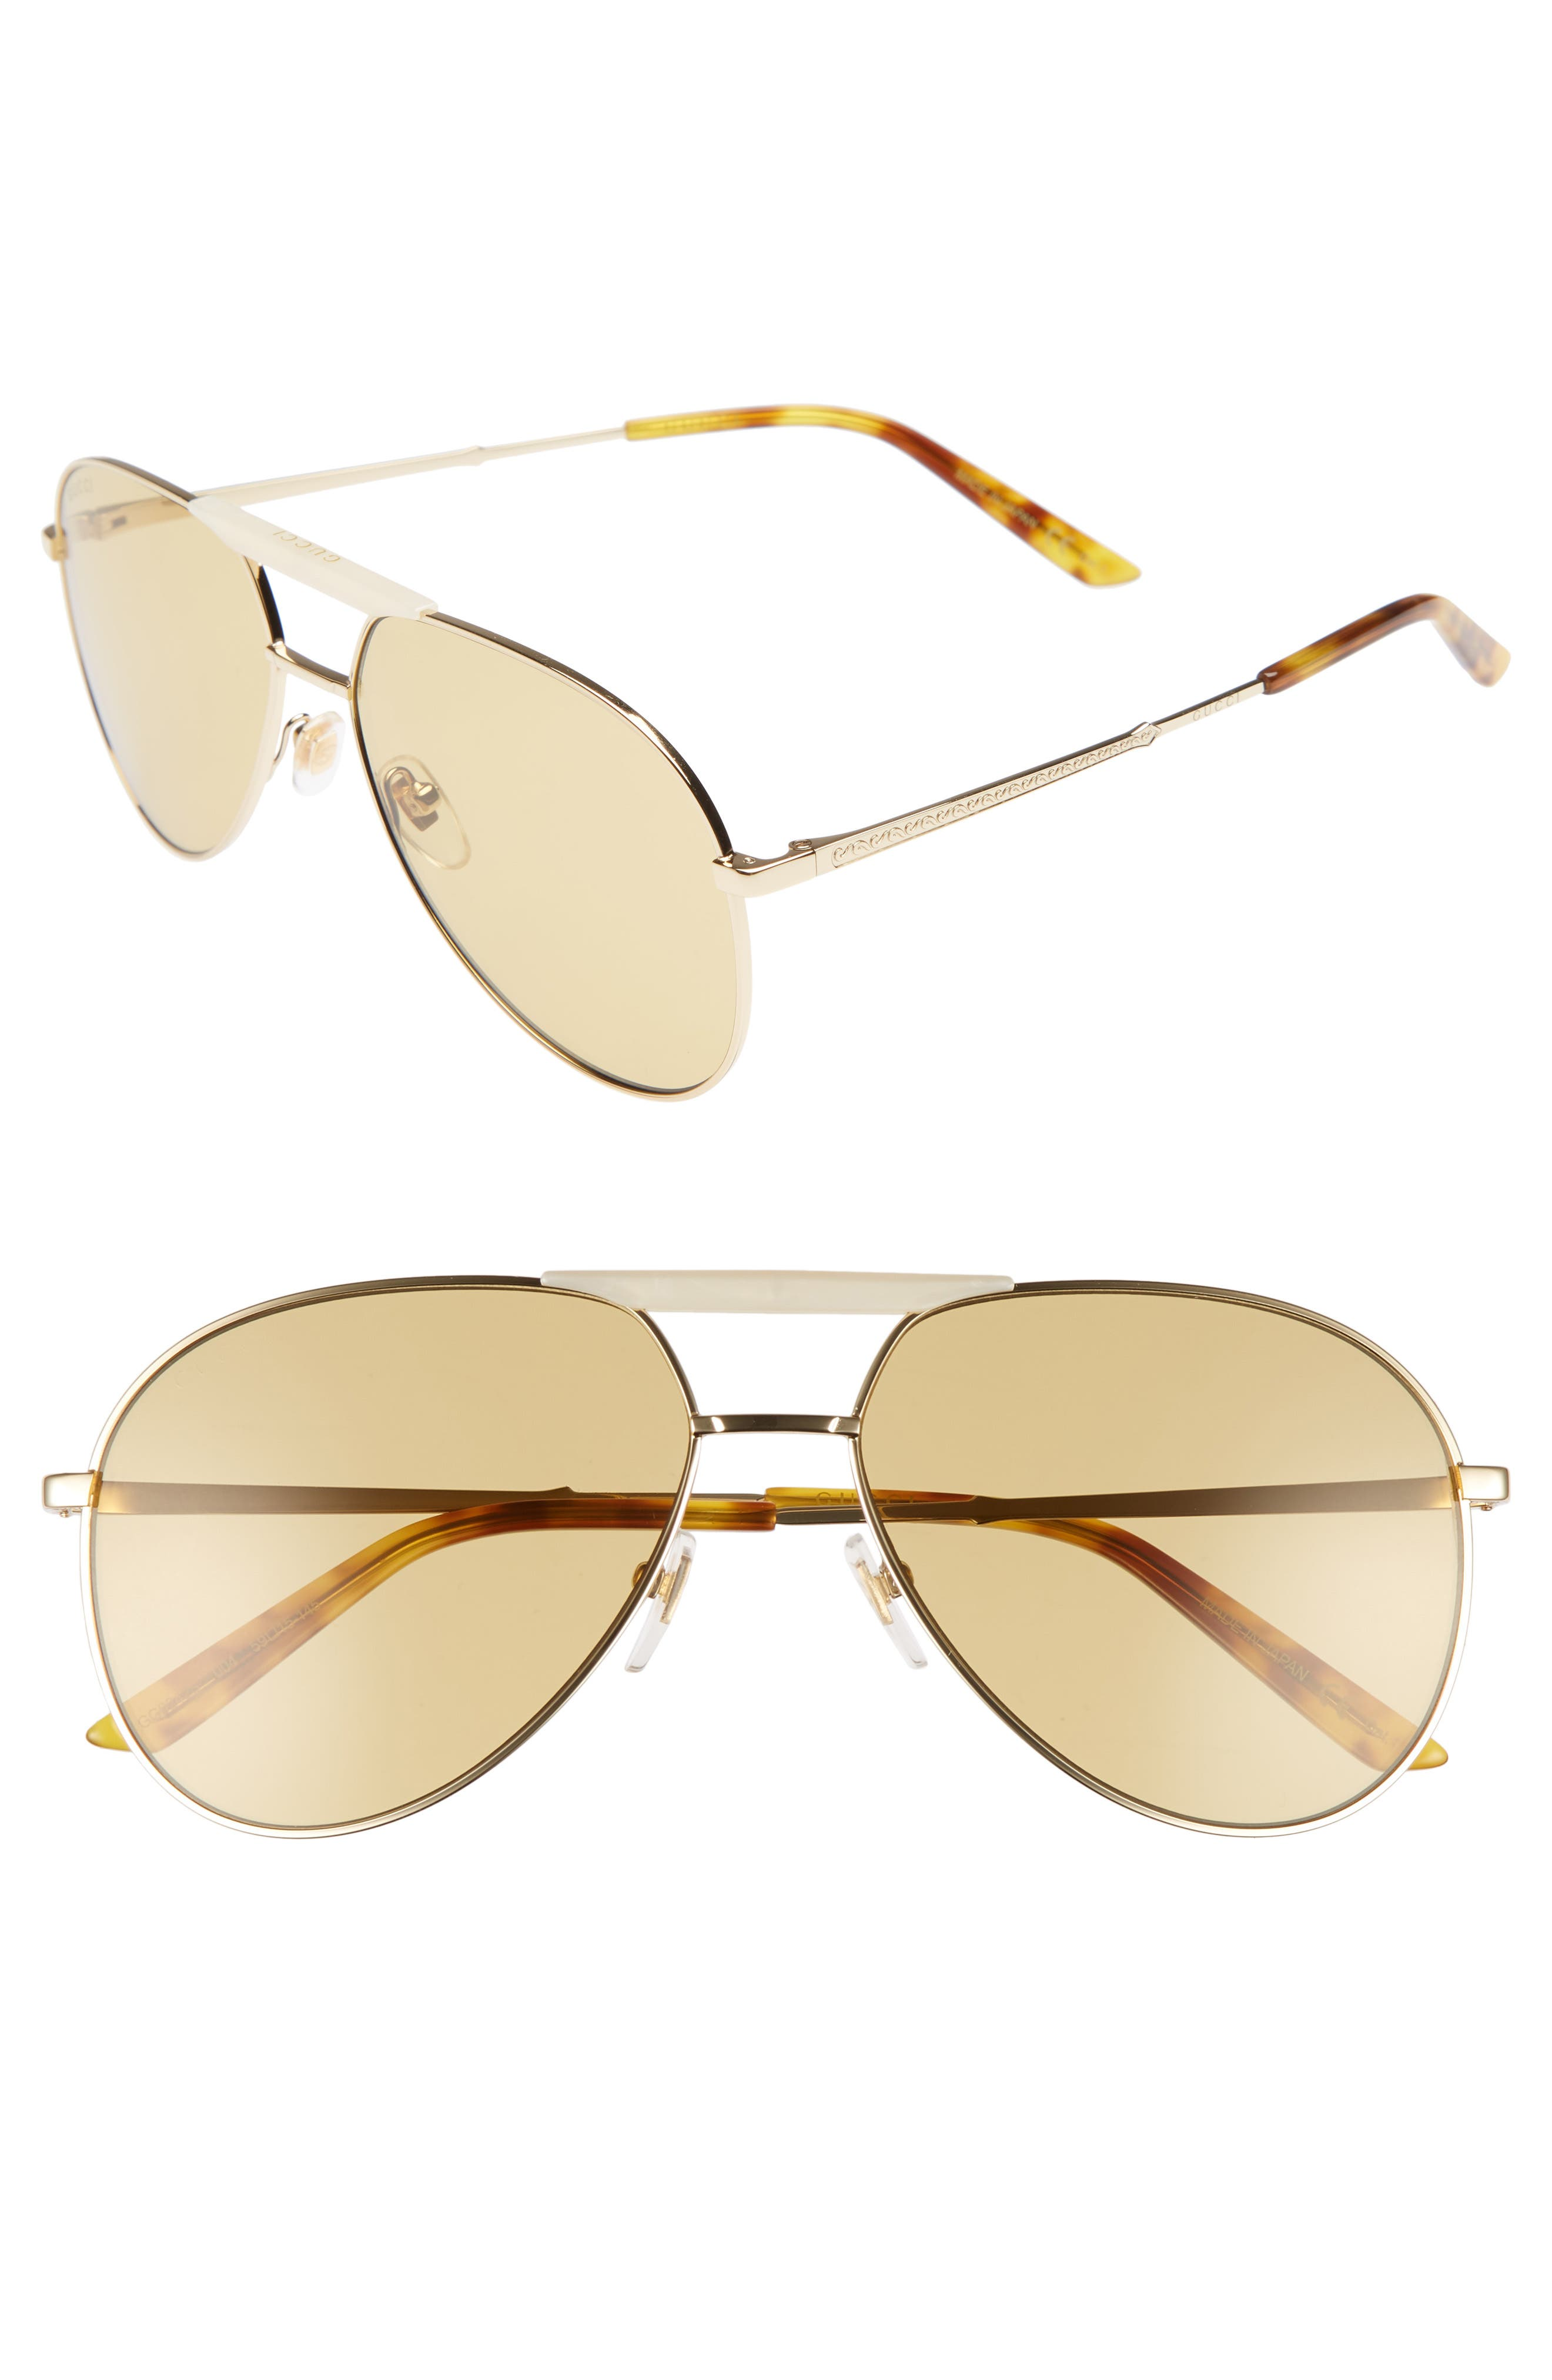 Main Image - Gucci Cruise 59mm Aviator Sunglasses